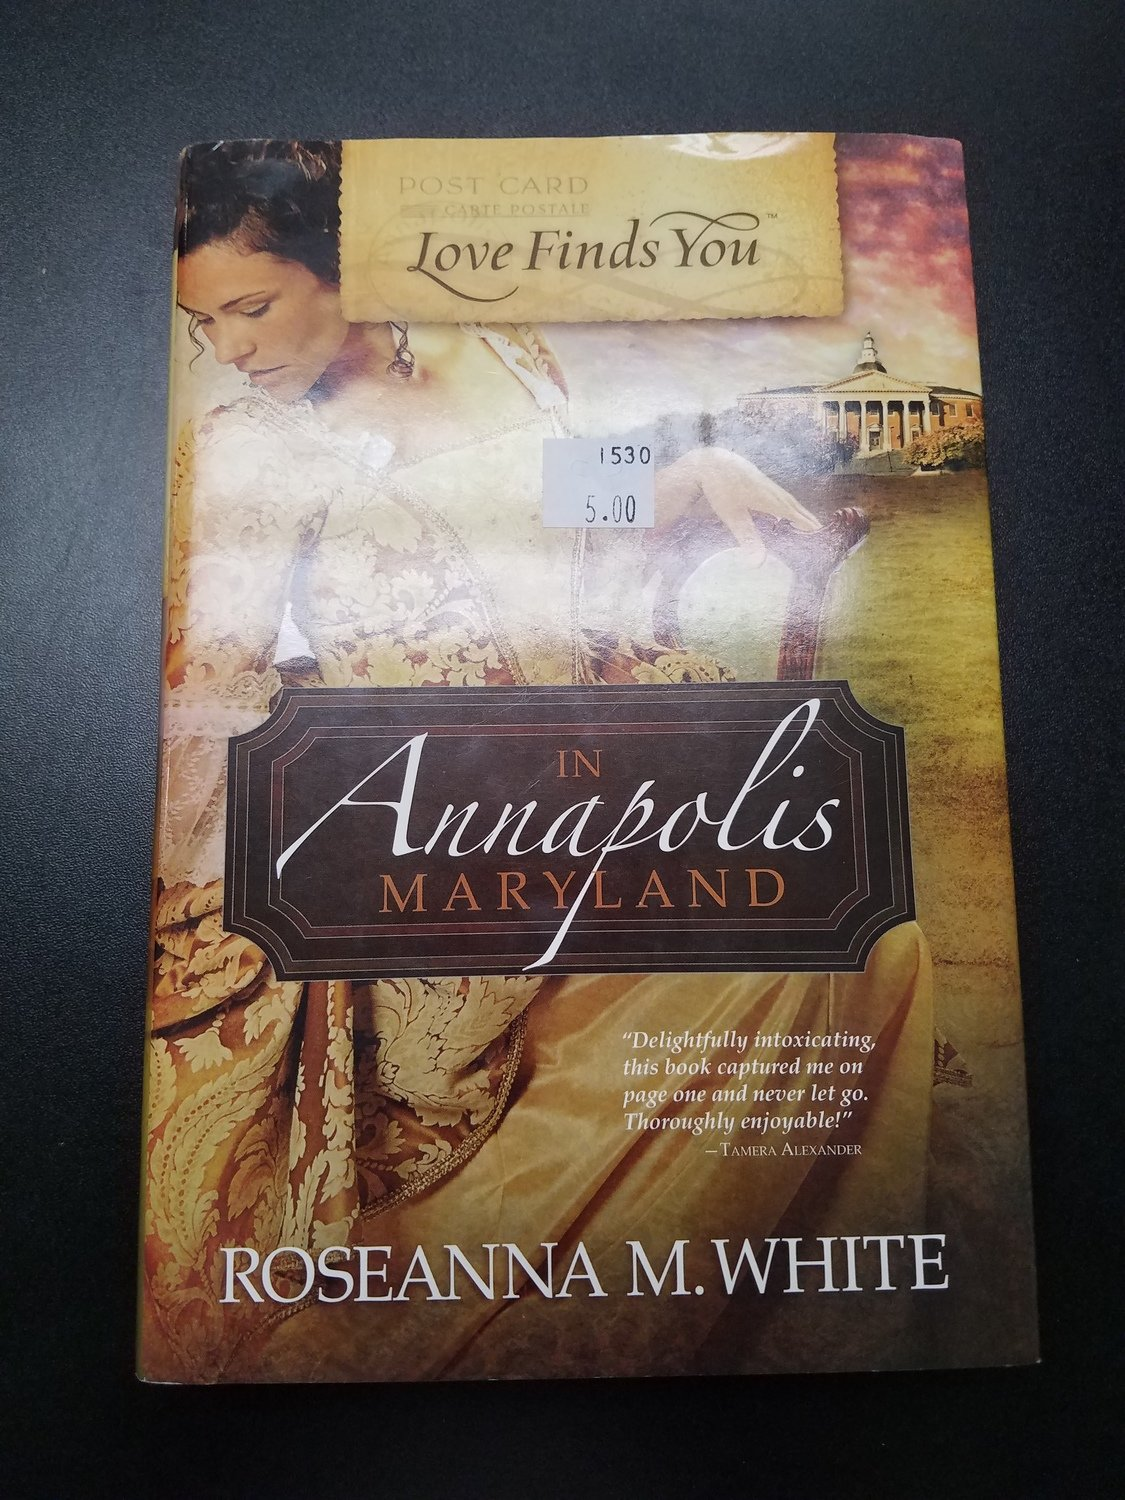 Love Finds You in Annapolis Maryland by Roseanna M. White